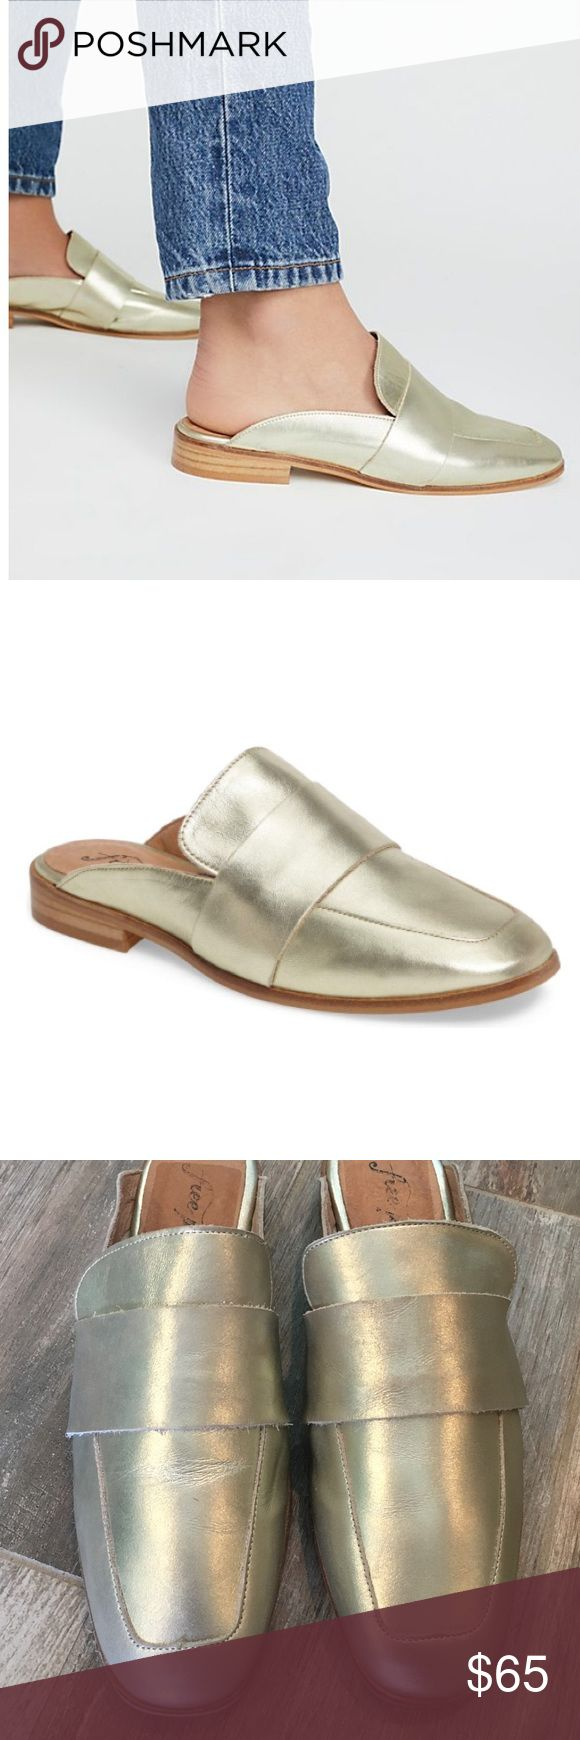 "NWOT Free people loafer Light gold slip on ""at ease"" loafer.  New never worn.  Tried on in store and in my posh room only. These are a 38 and fit like a 7-7.5. Free People Shoes Flats & Loafers"